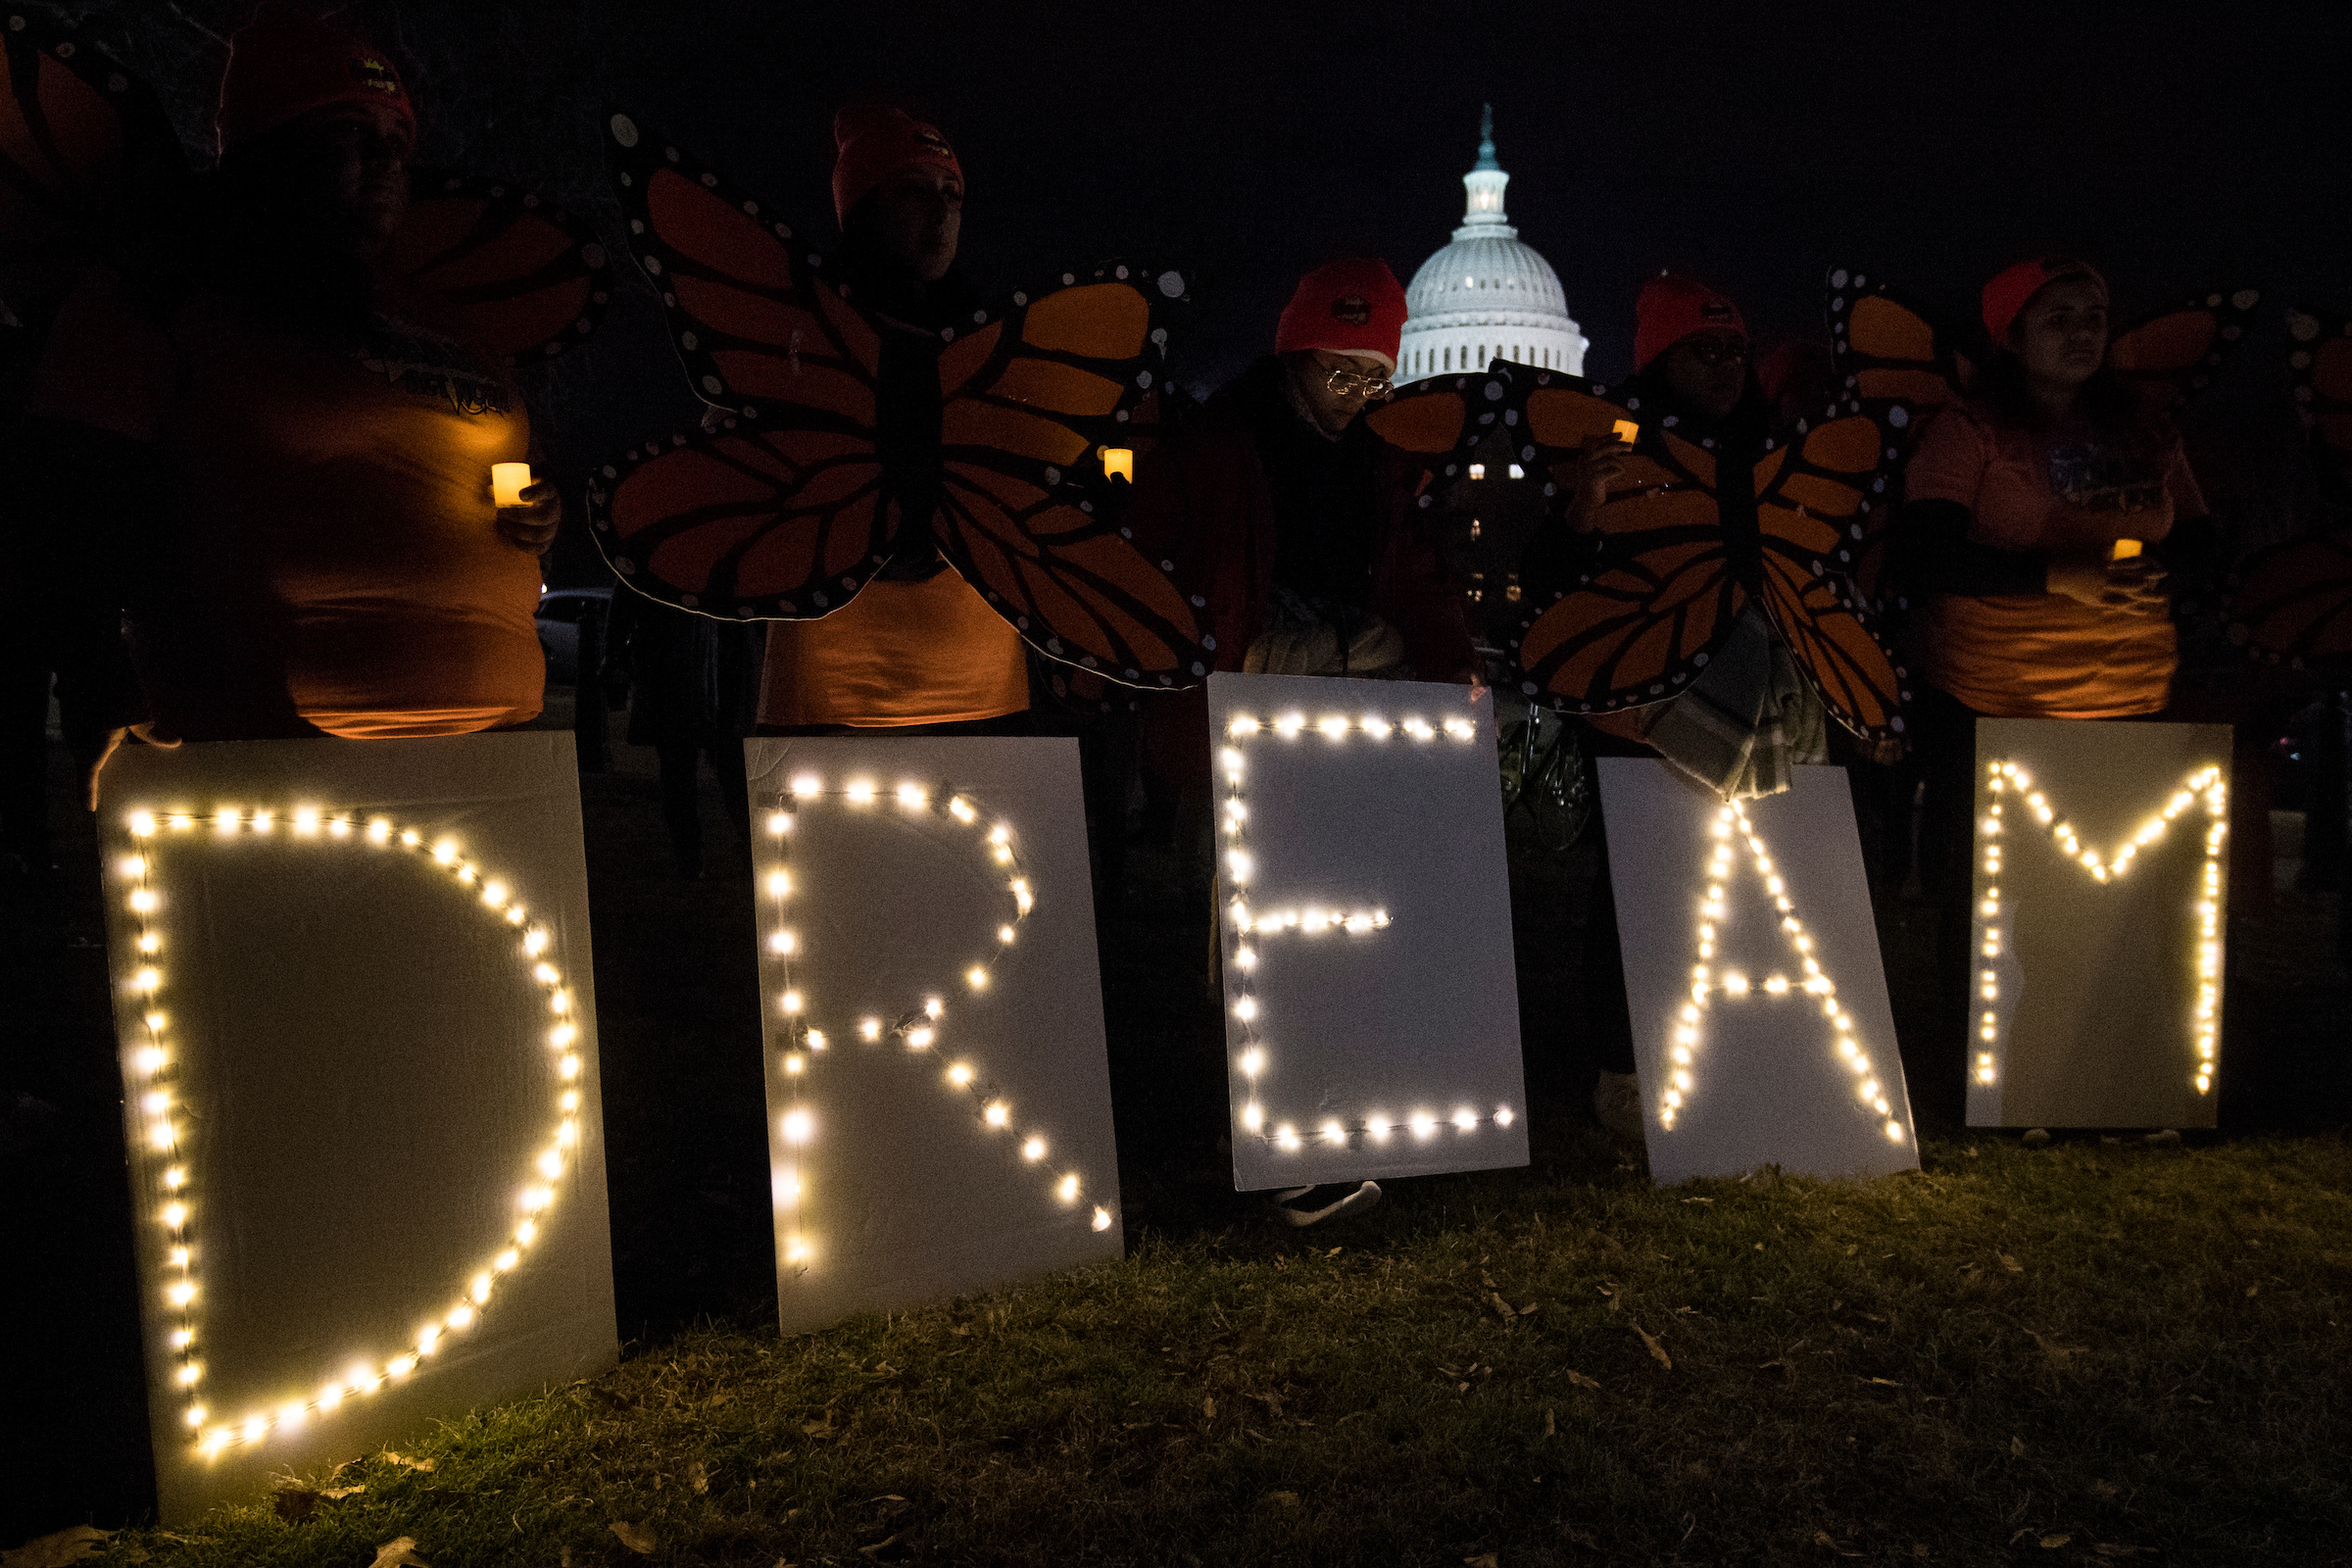 Dreamers protest outside of the Capitol calling for passage of the Dream Act as Congress works to find a way to end the government shutdown on Sunday evening. (Bill Clark/CQ Roll Call)